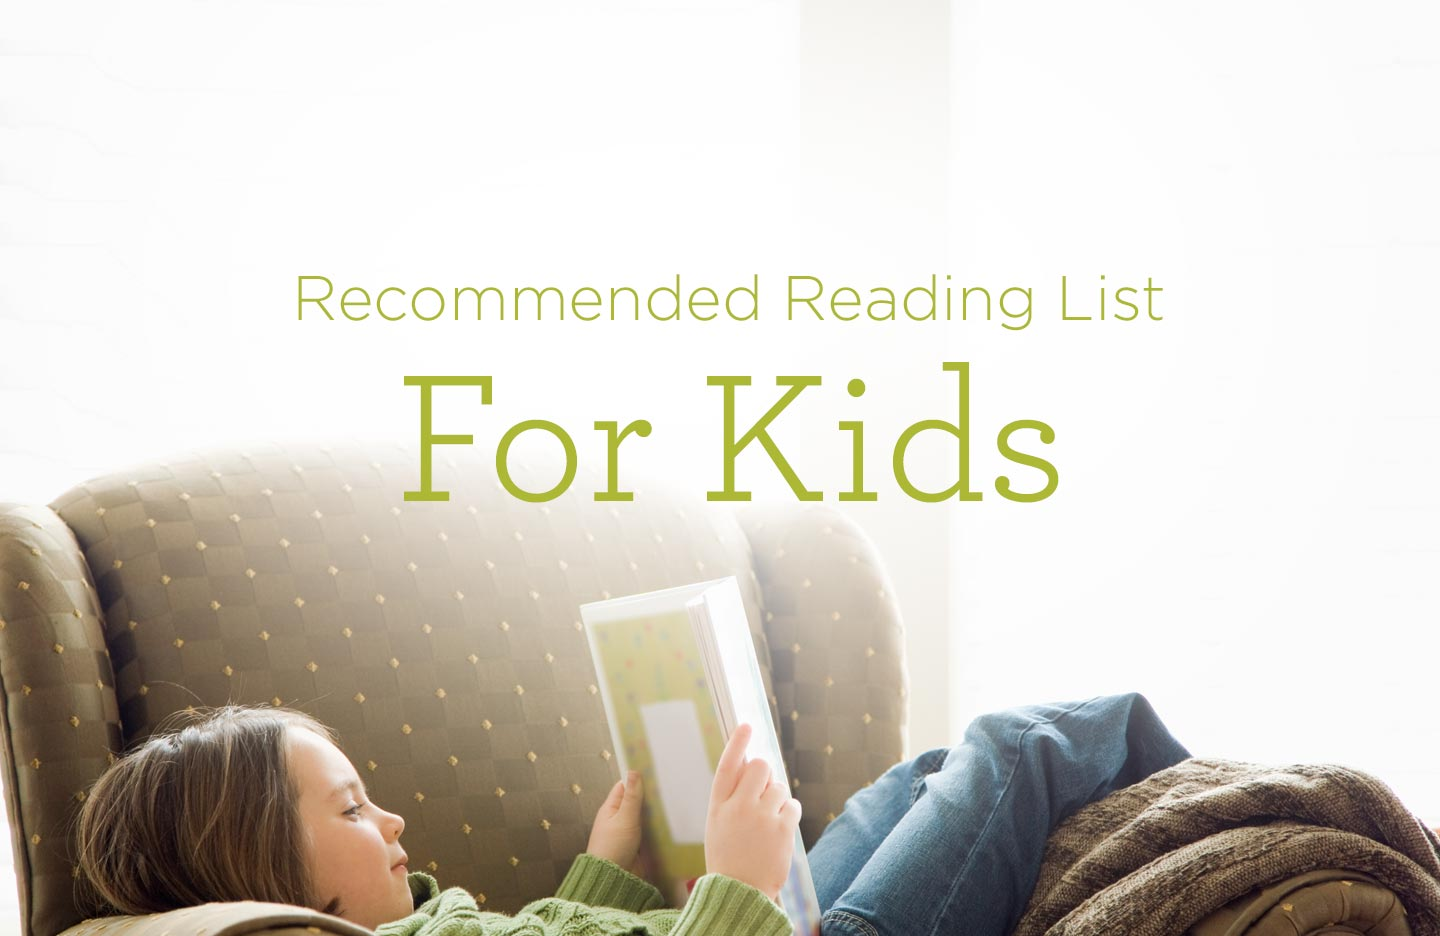 Recommended Reading List for Kids